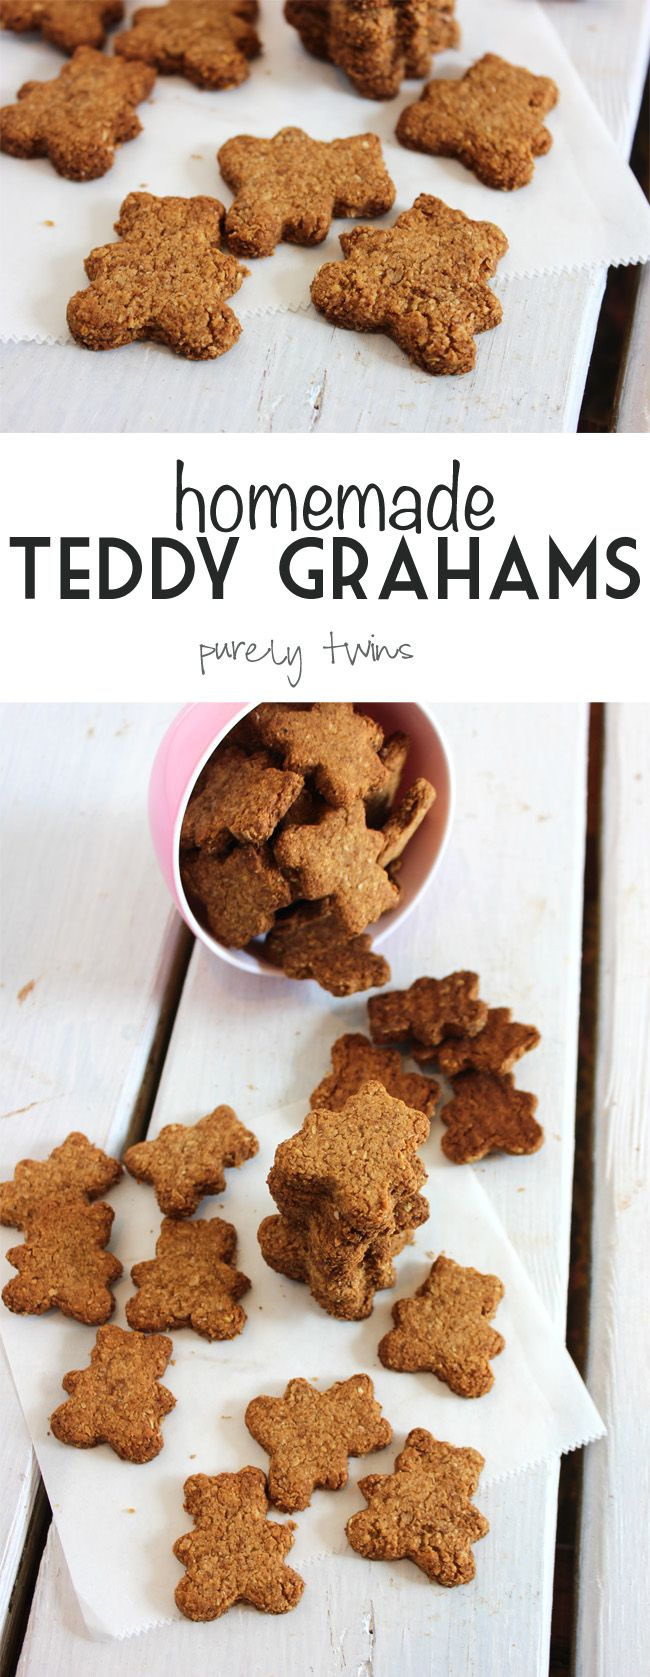 Homemade Teddy Grahams with tigernut flour (AIP friendly)